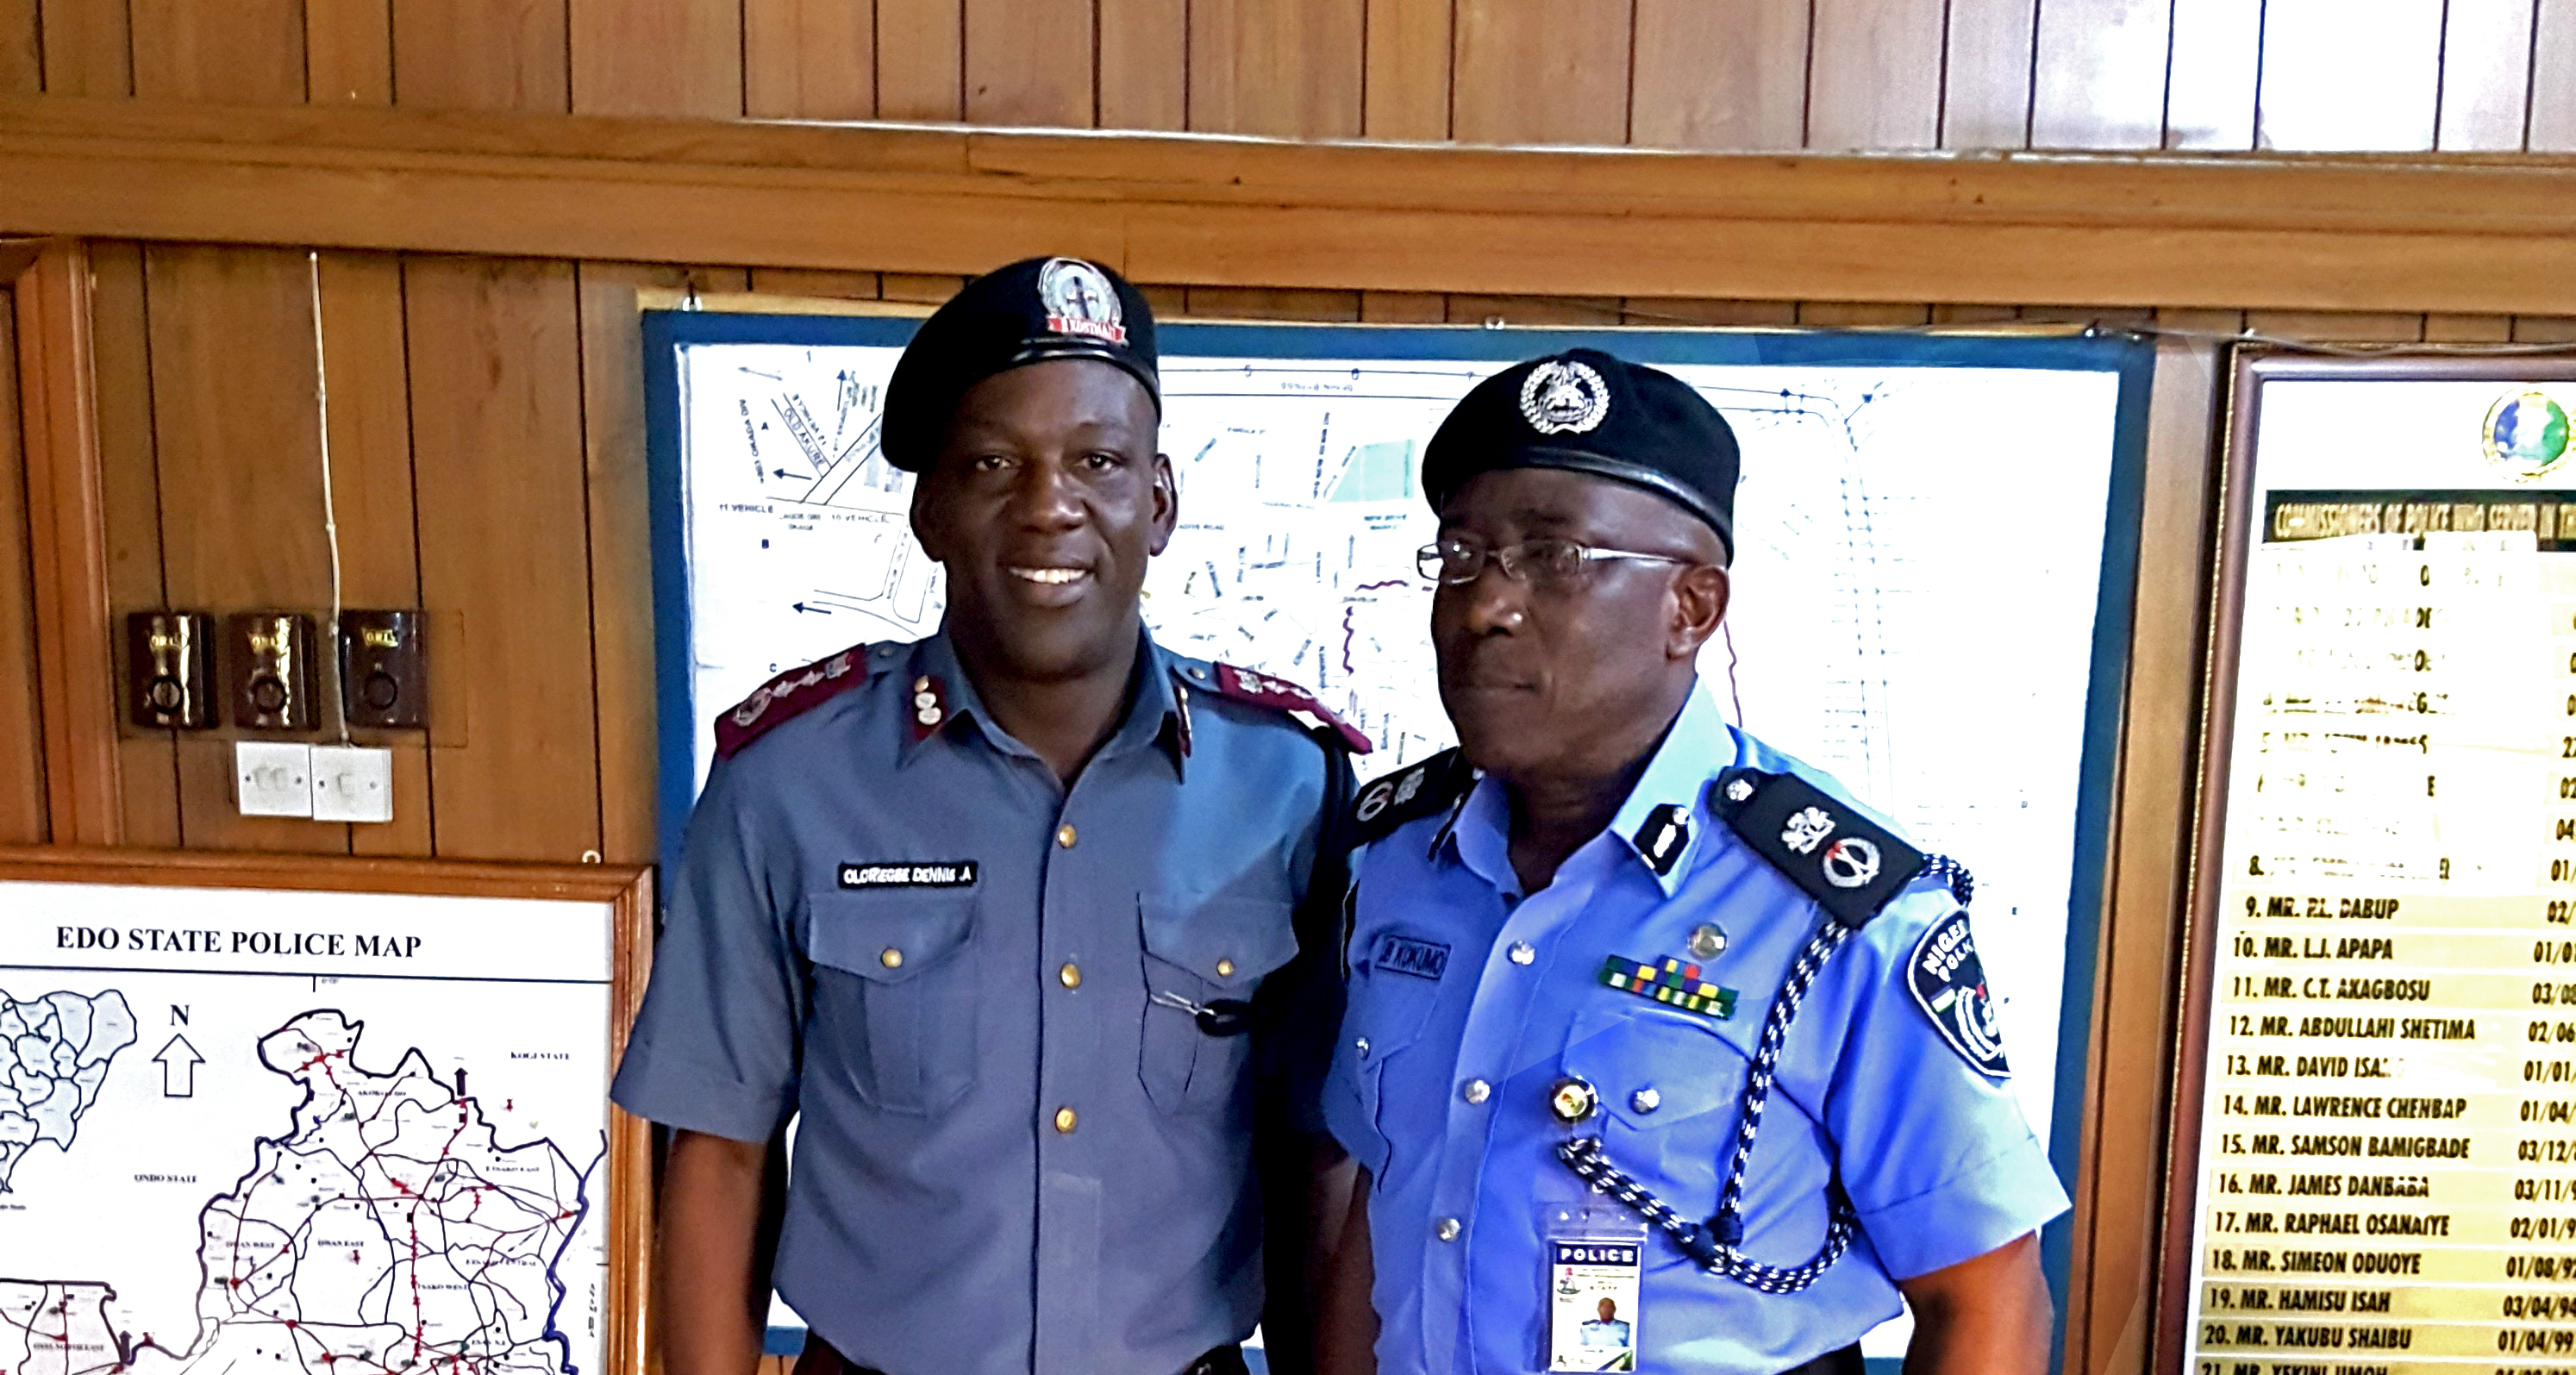 Obaseki, Ogie condemn manhandling of EDSTMA officials by police